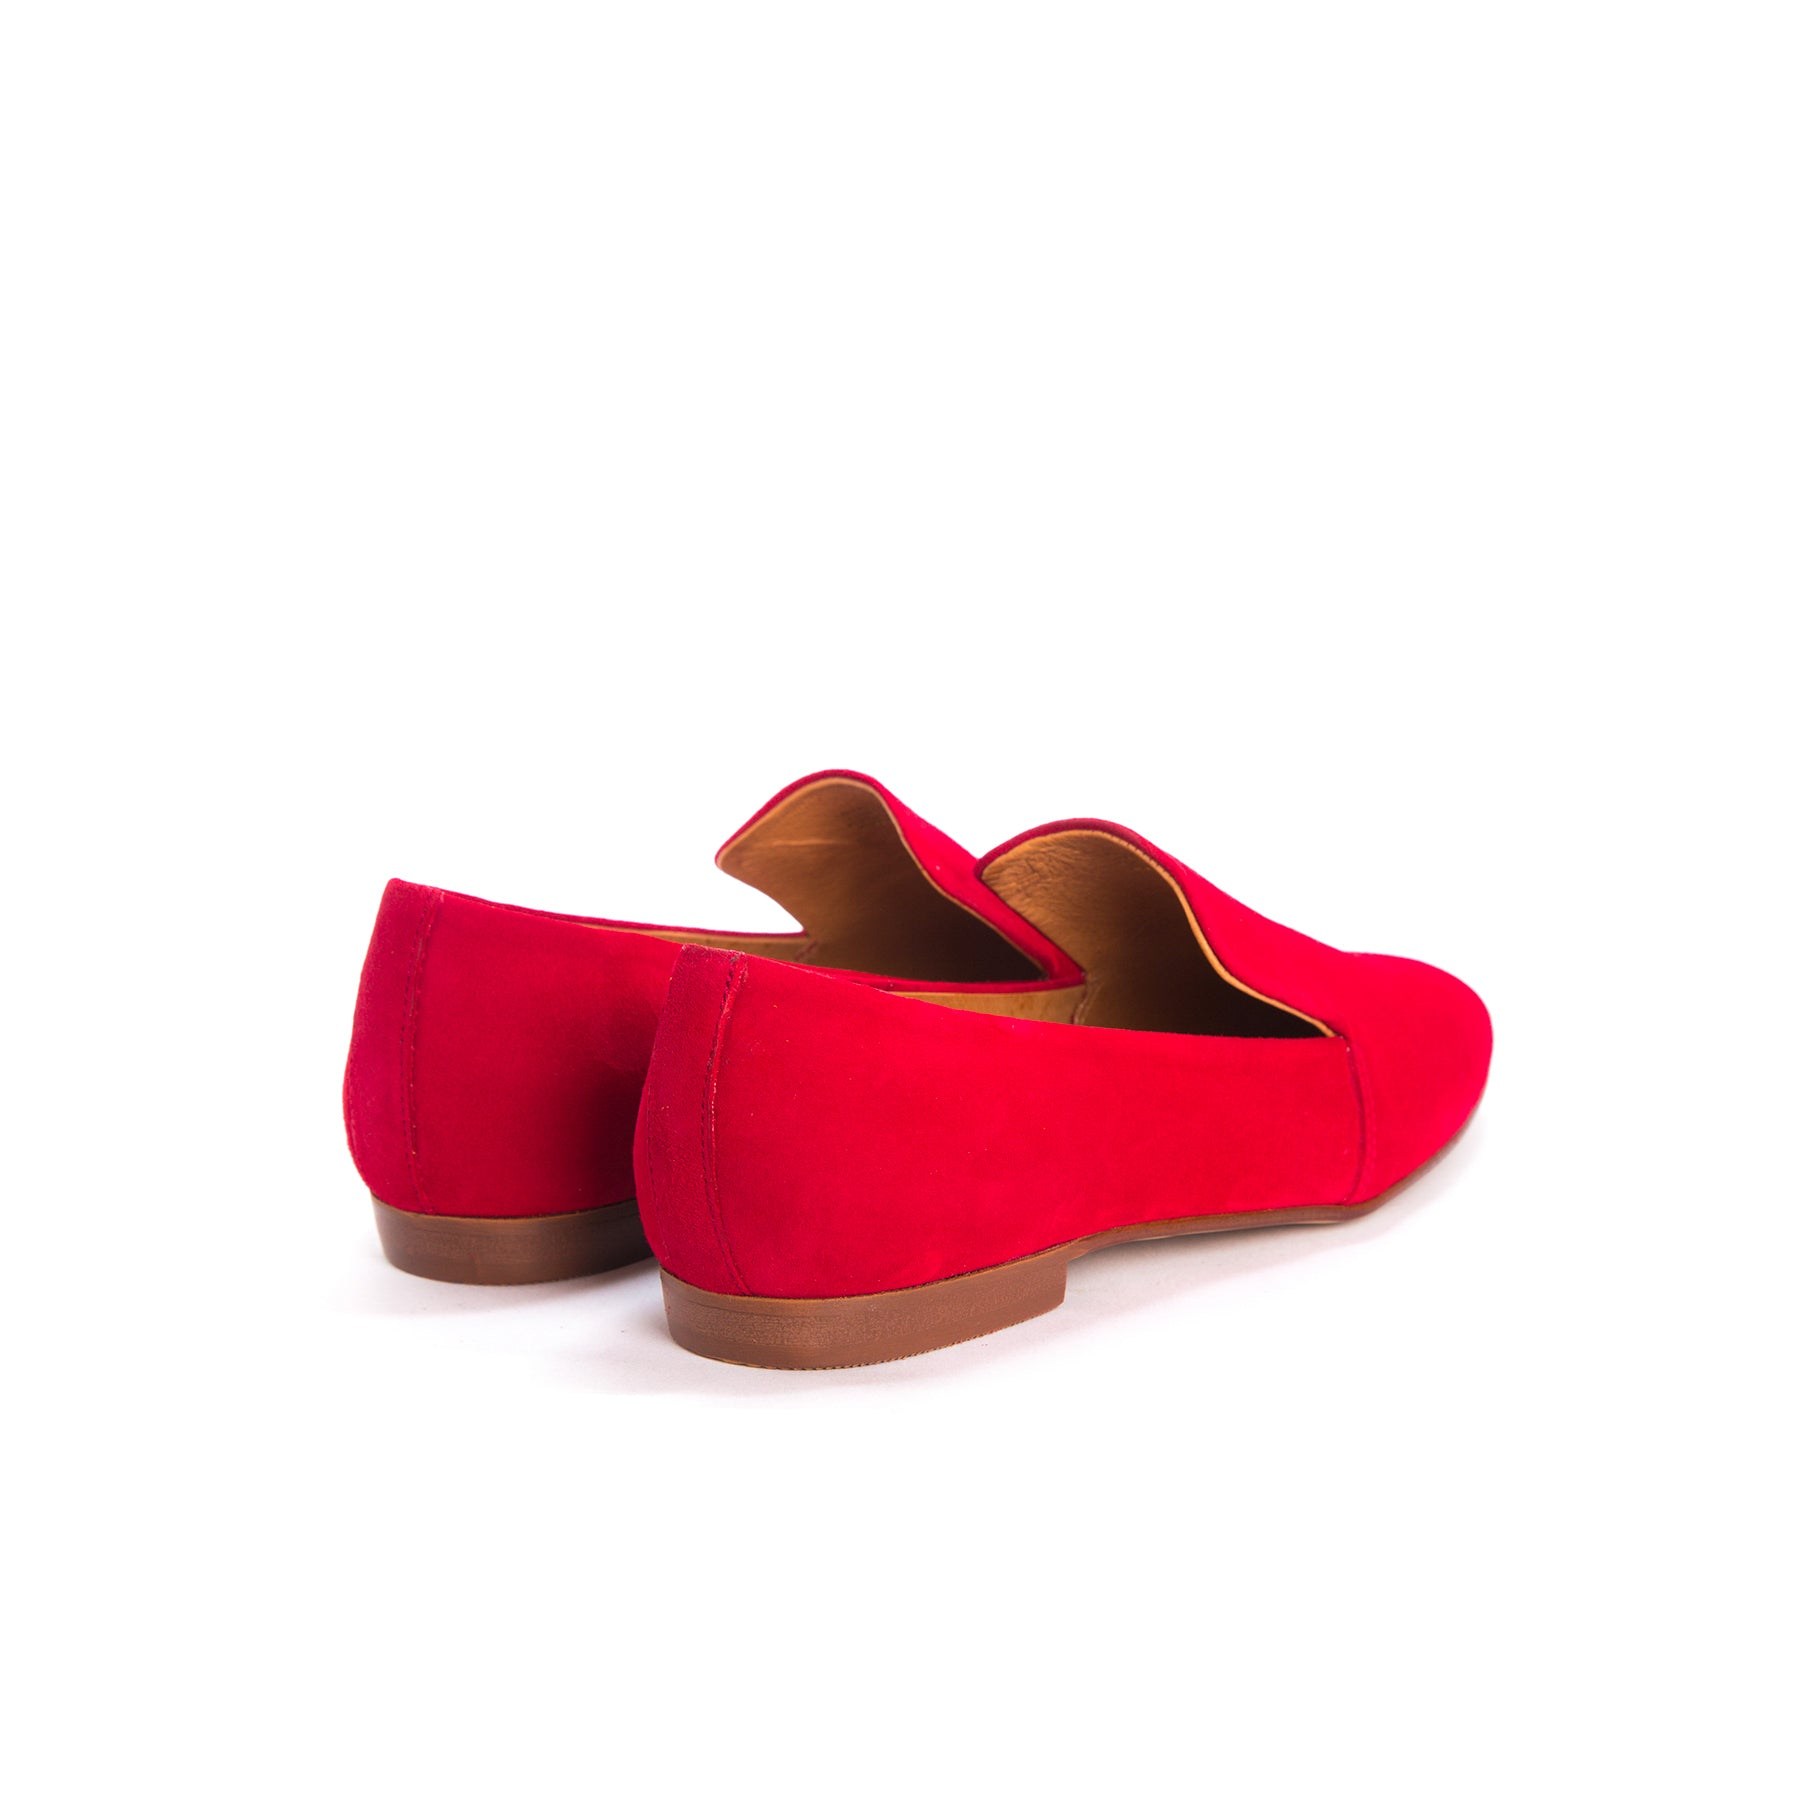 Noritati Red Suede